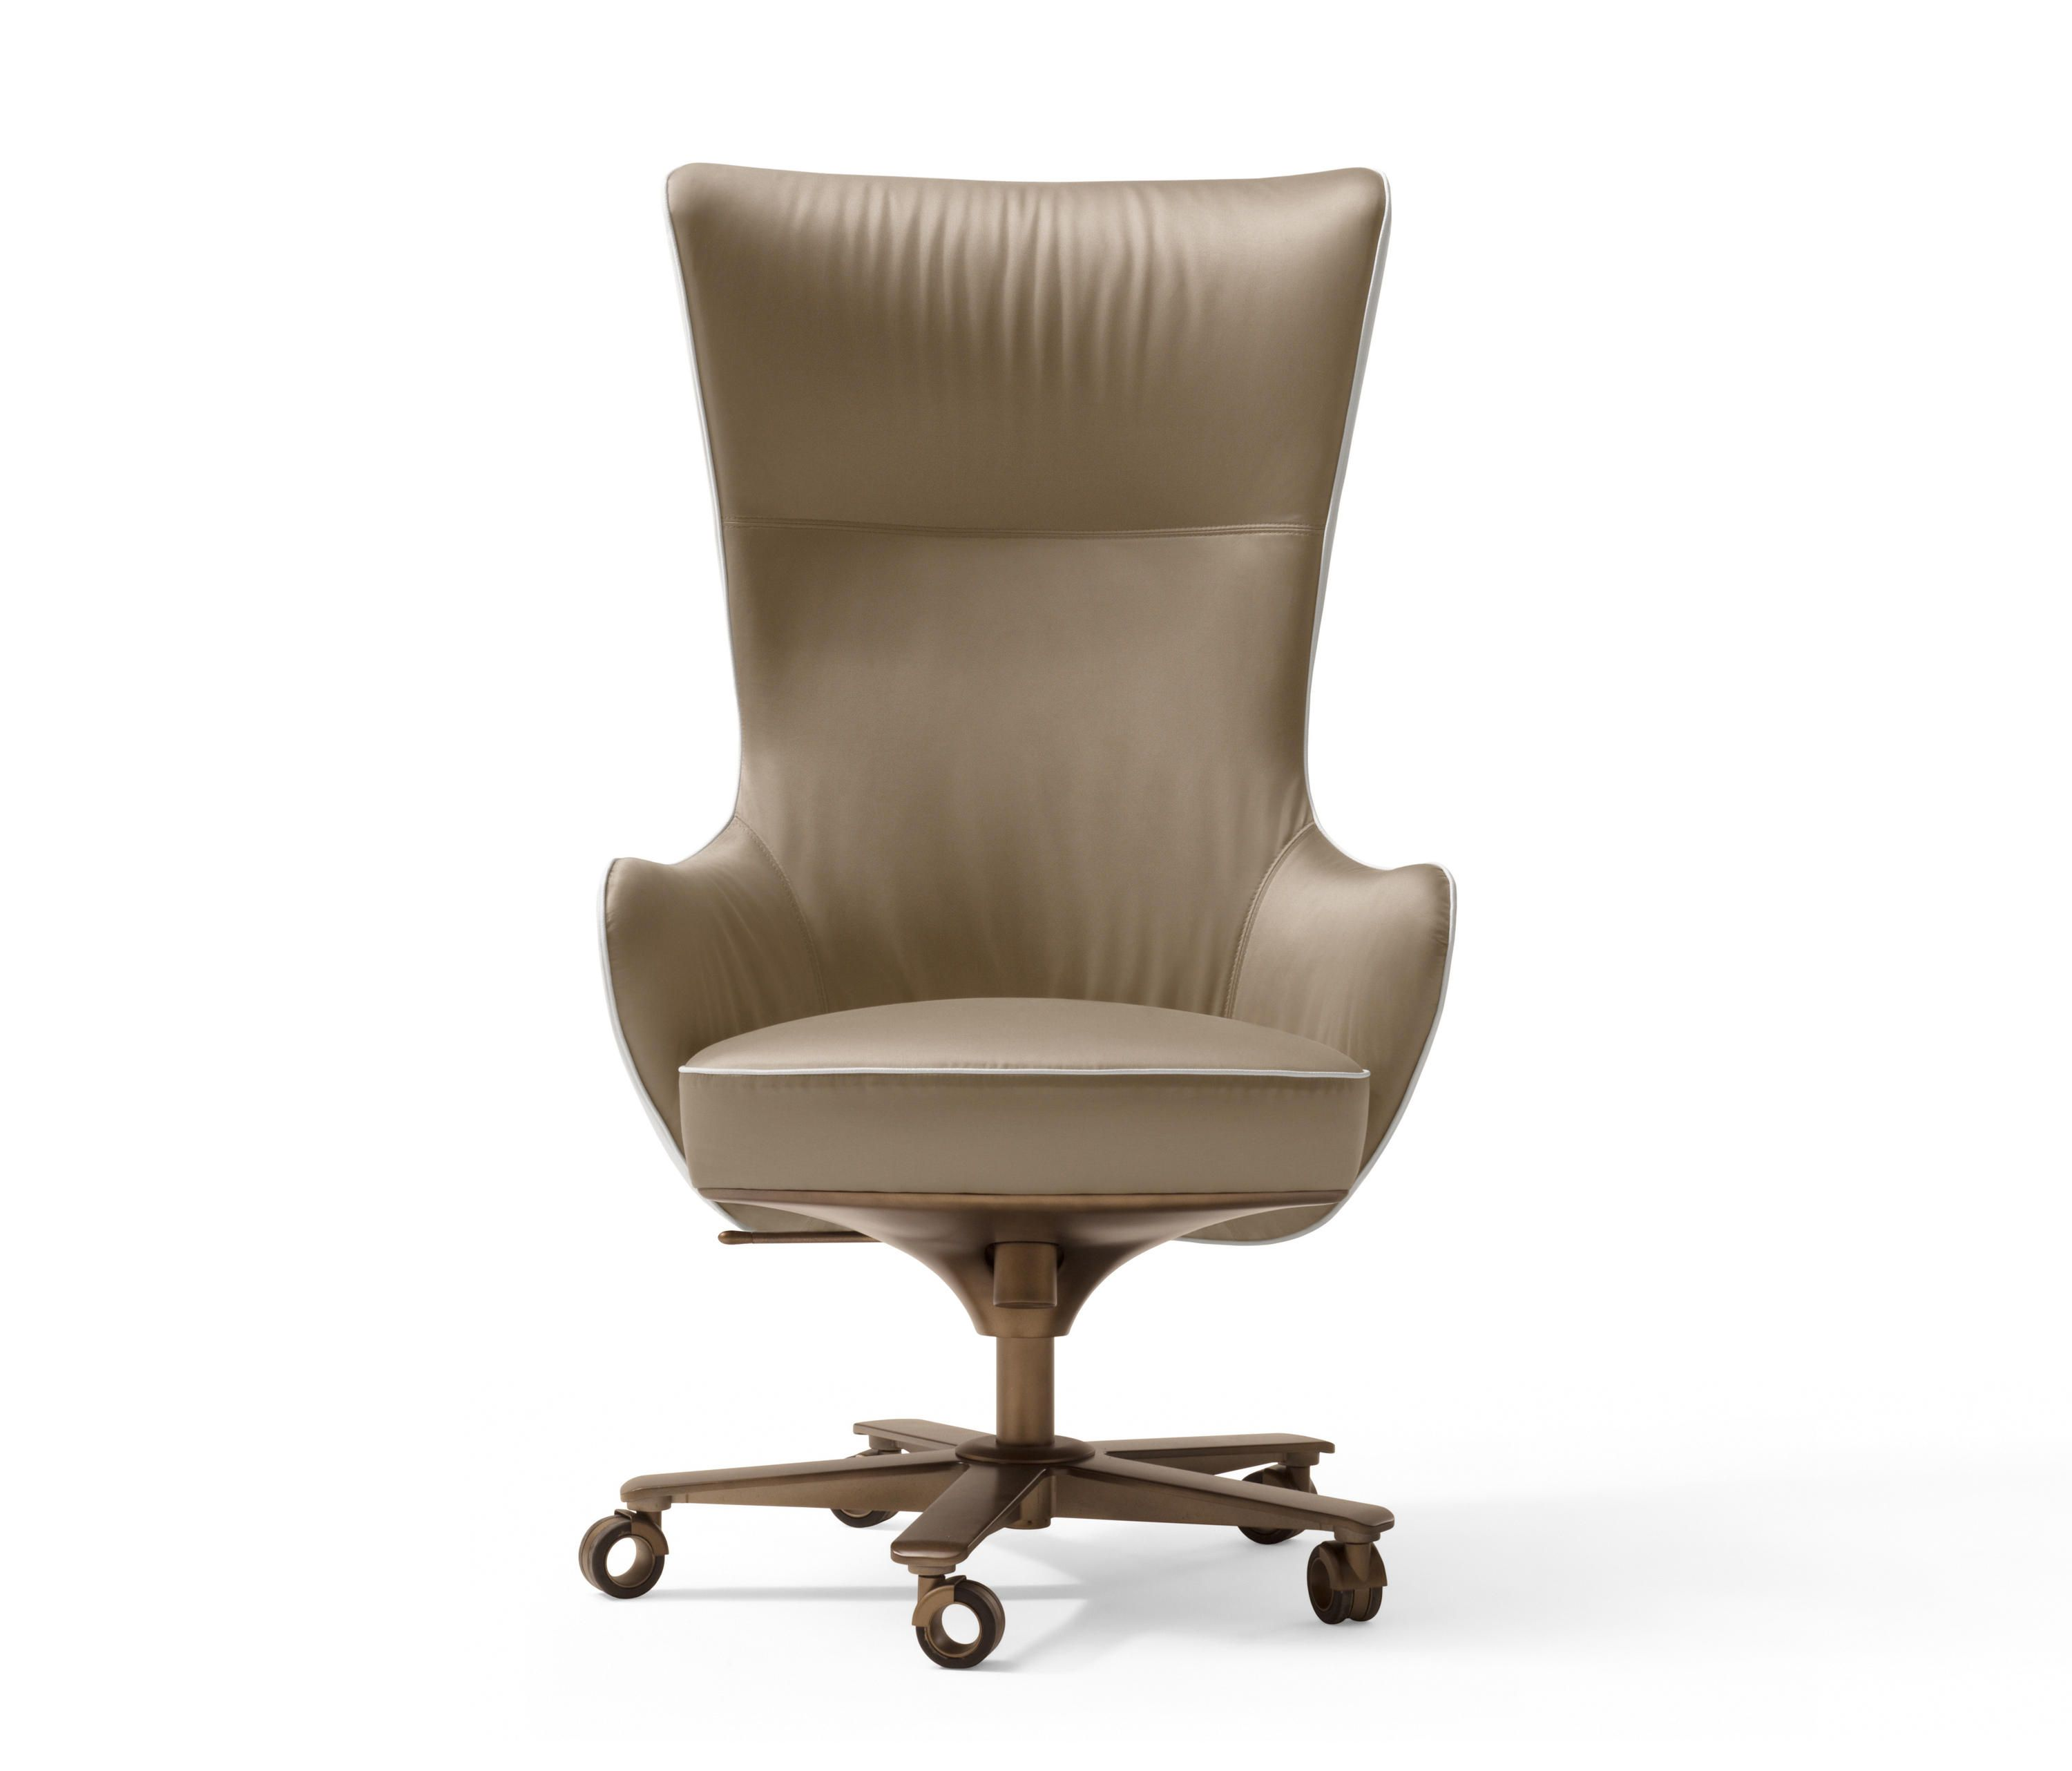 Genius Armchair by Executive chairs